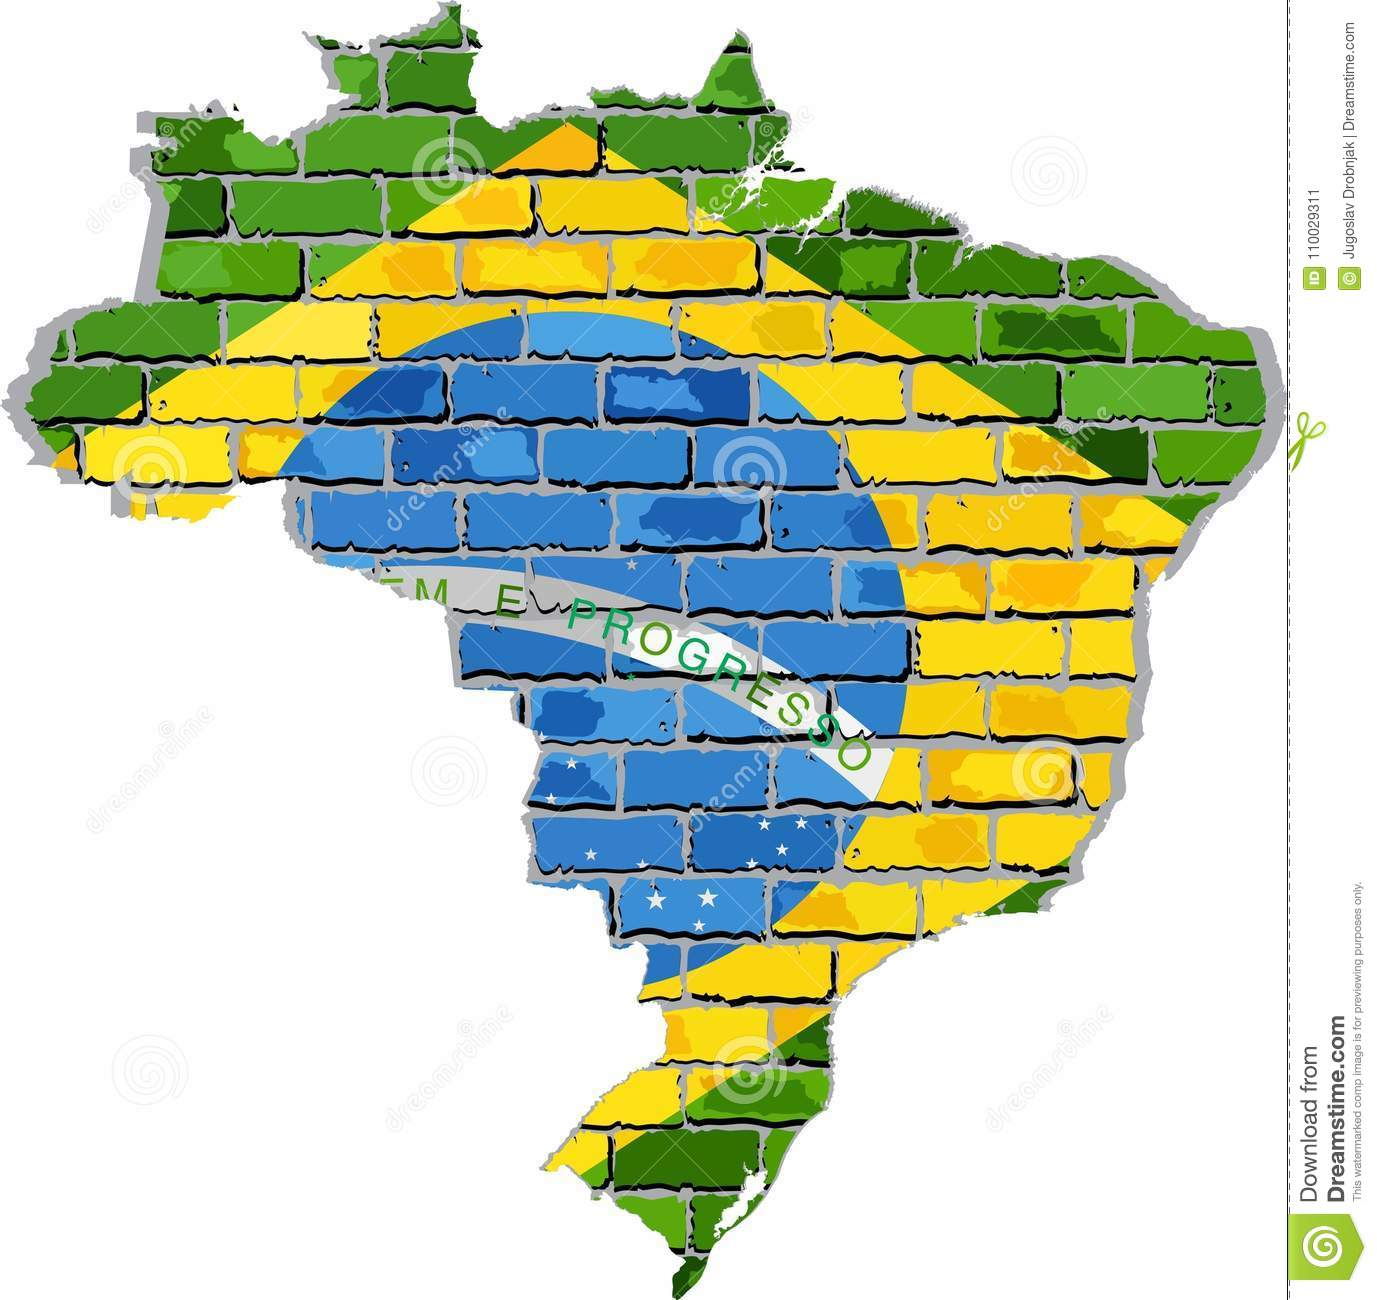 Brazil map on a brick wall stock vector. Illustration of cartography ...